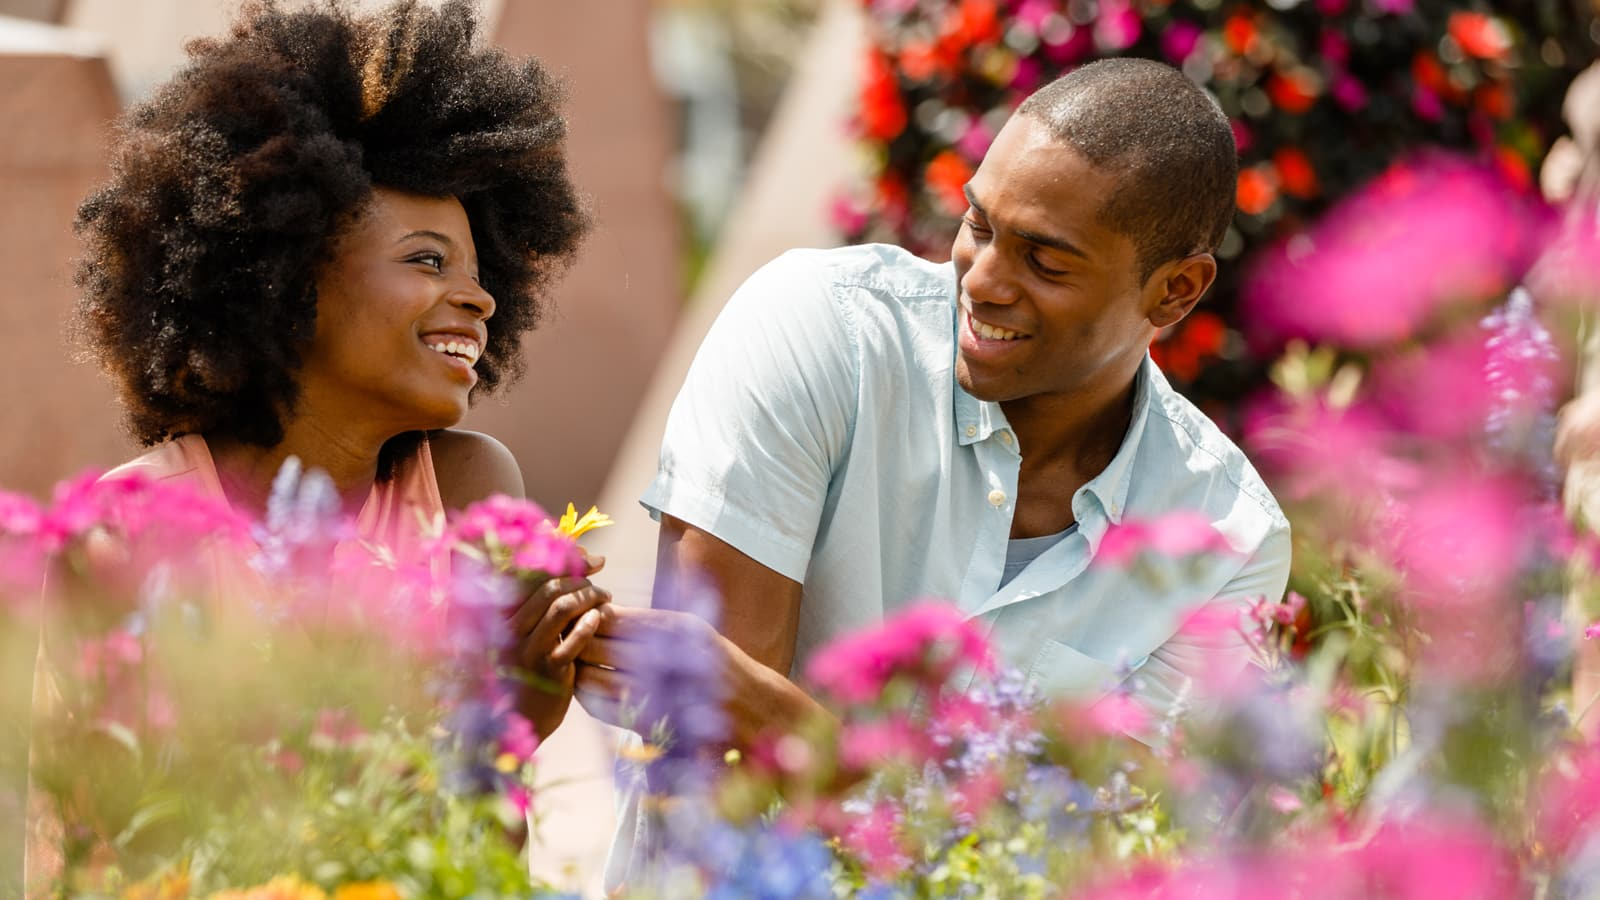 A man and woman surrounded by flowers